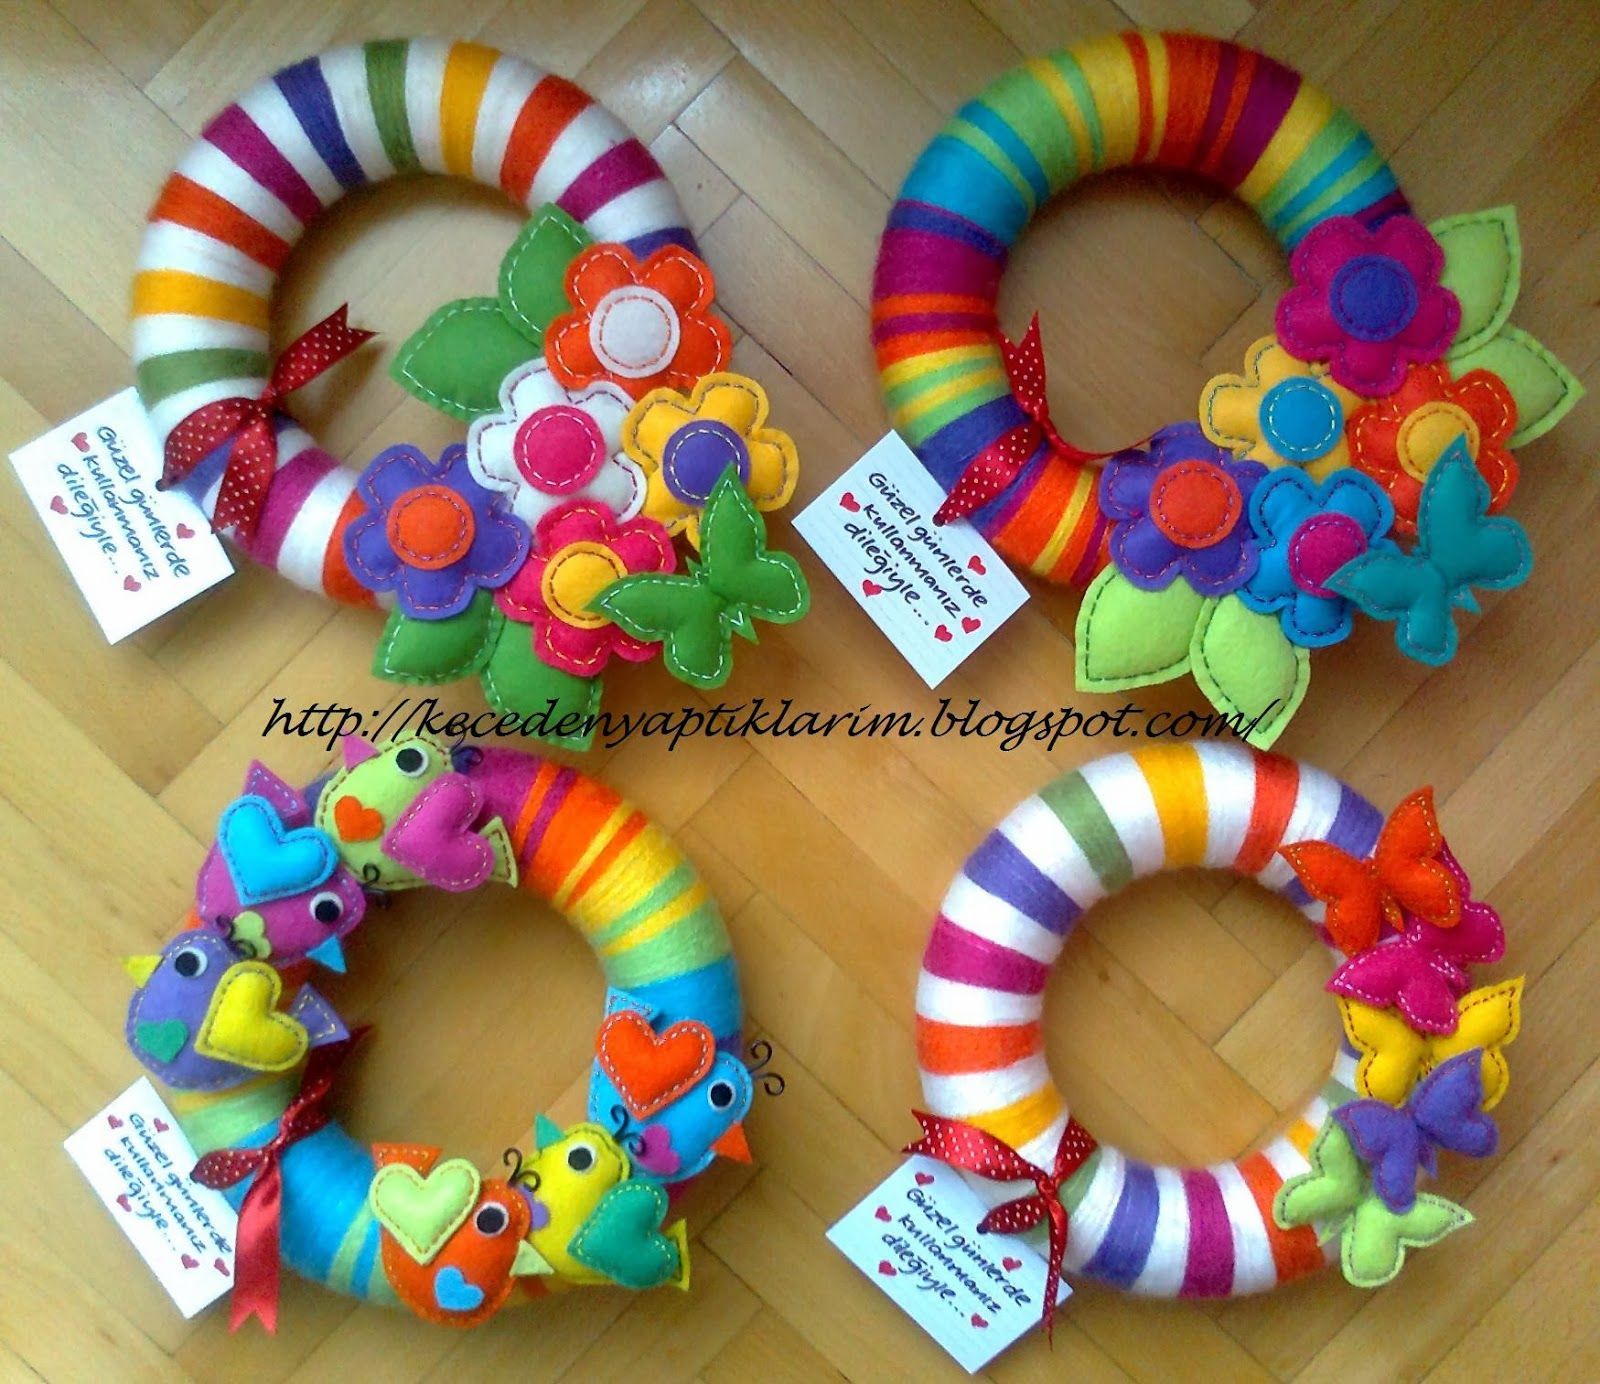 Decoración Manualidades En Fieltro Felt Wreaths Fieltro Hermosooo Pinterest Fieltro